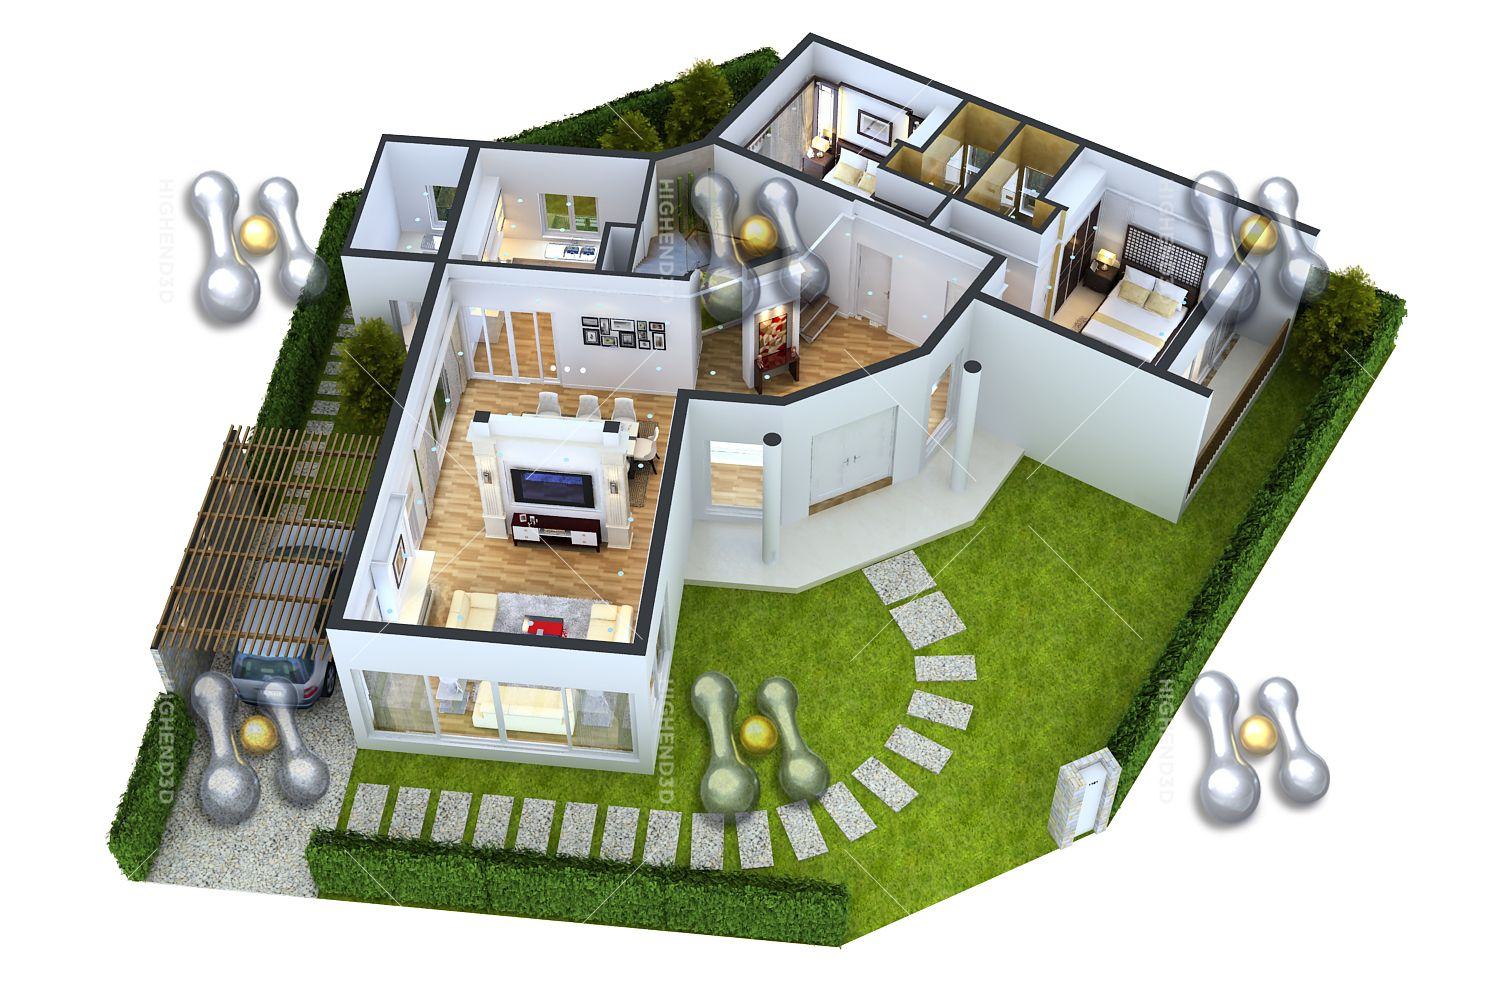 house 2 bedroom house plans 3d - Simple House Plan With 2 Bedrooms 3d